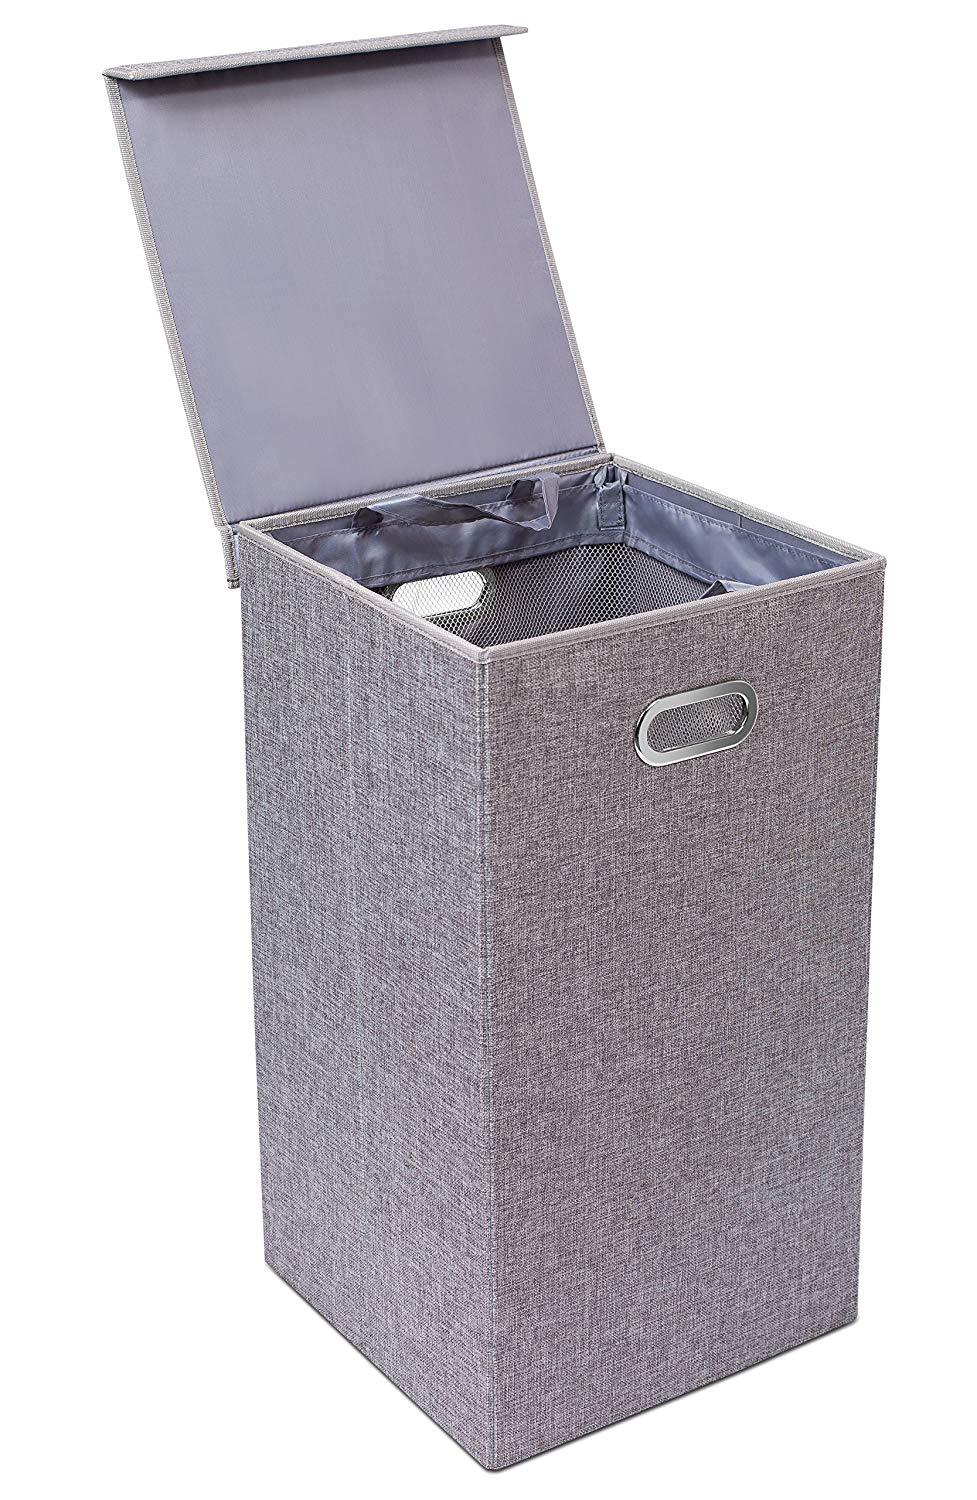 Single Gray Folding Hamper with Lid